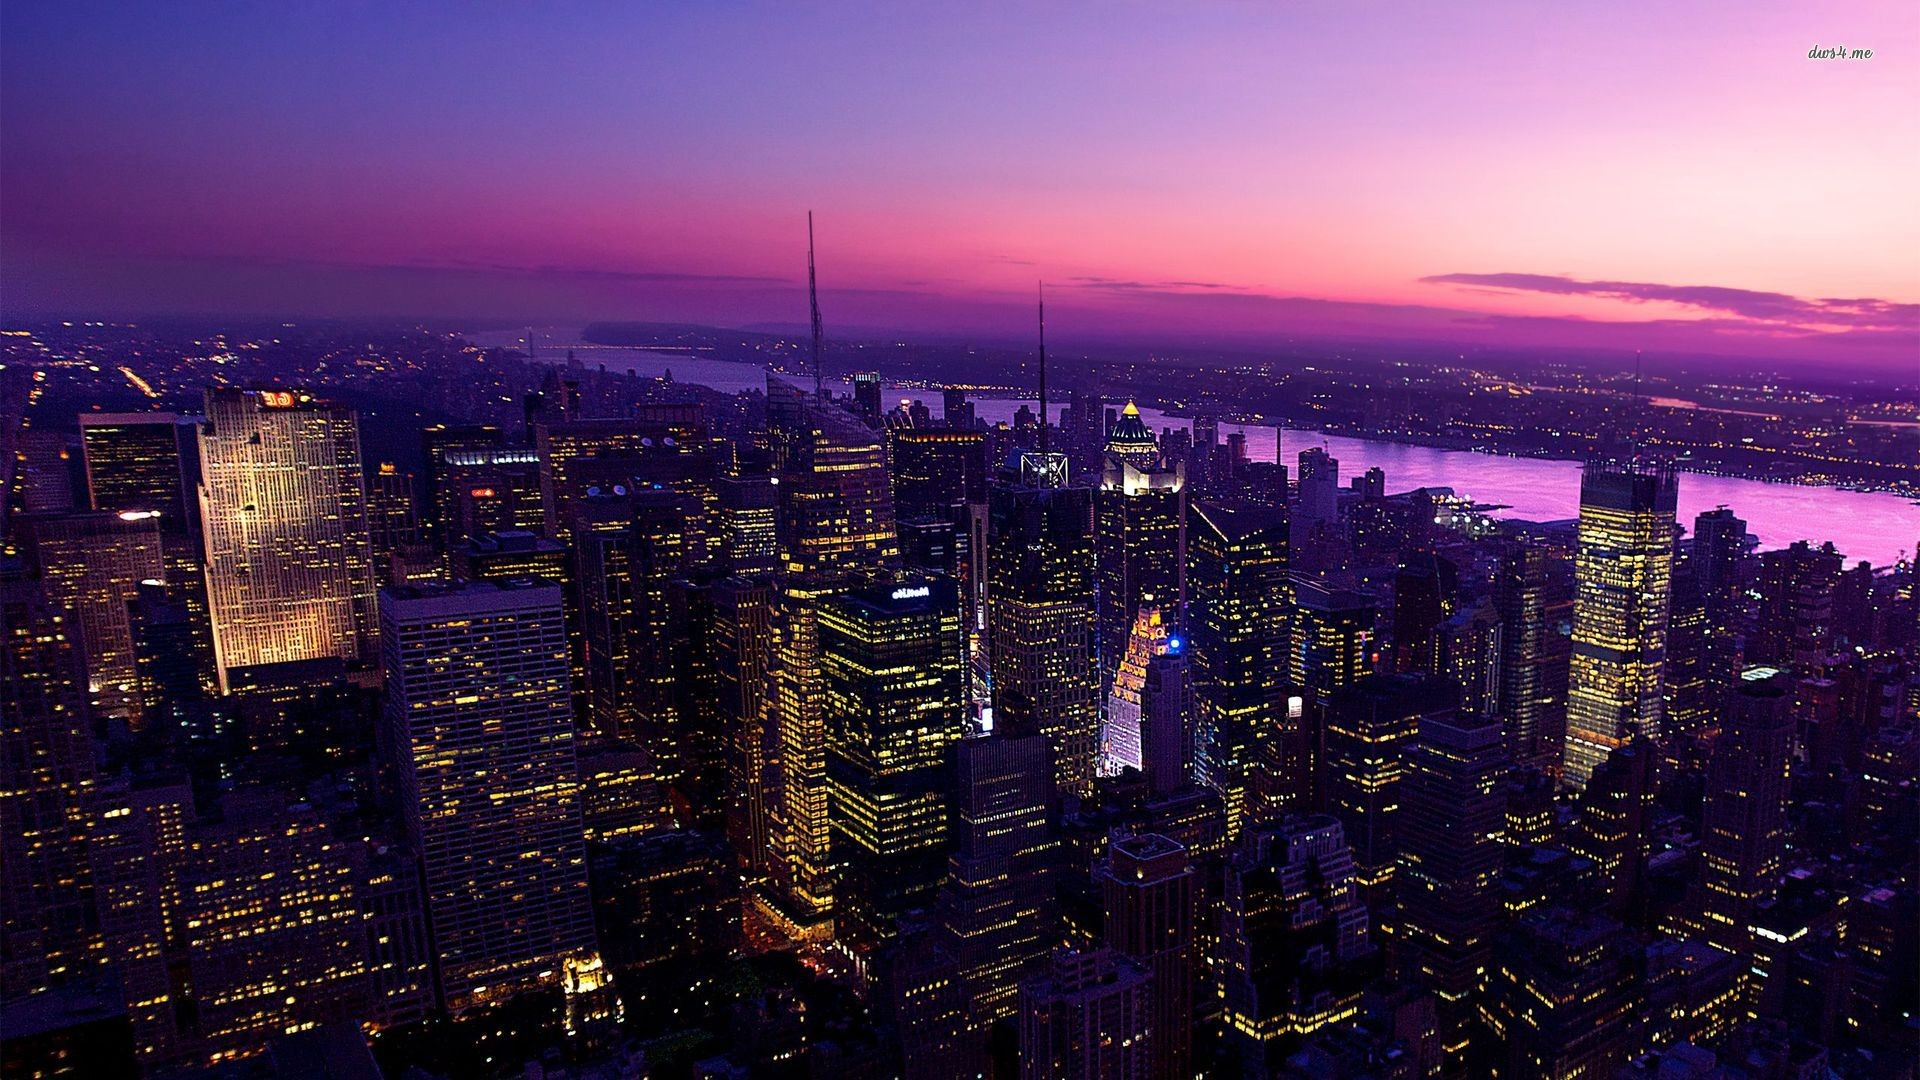 Night Time In New York City Wallpaper Posted By John Walker